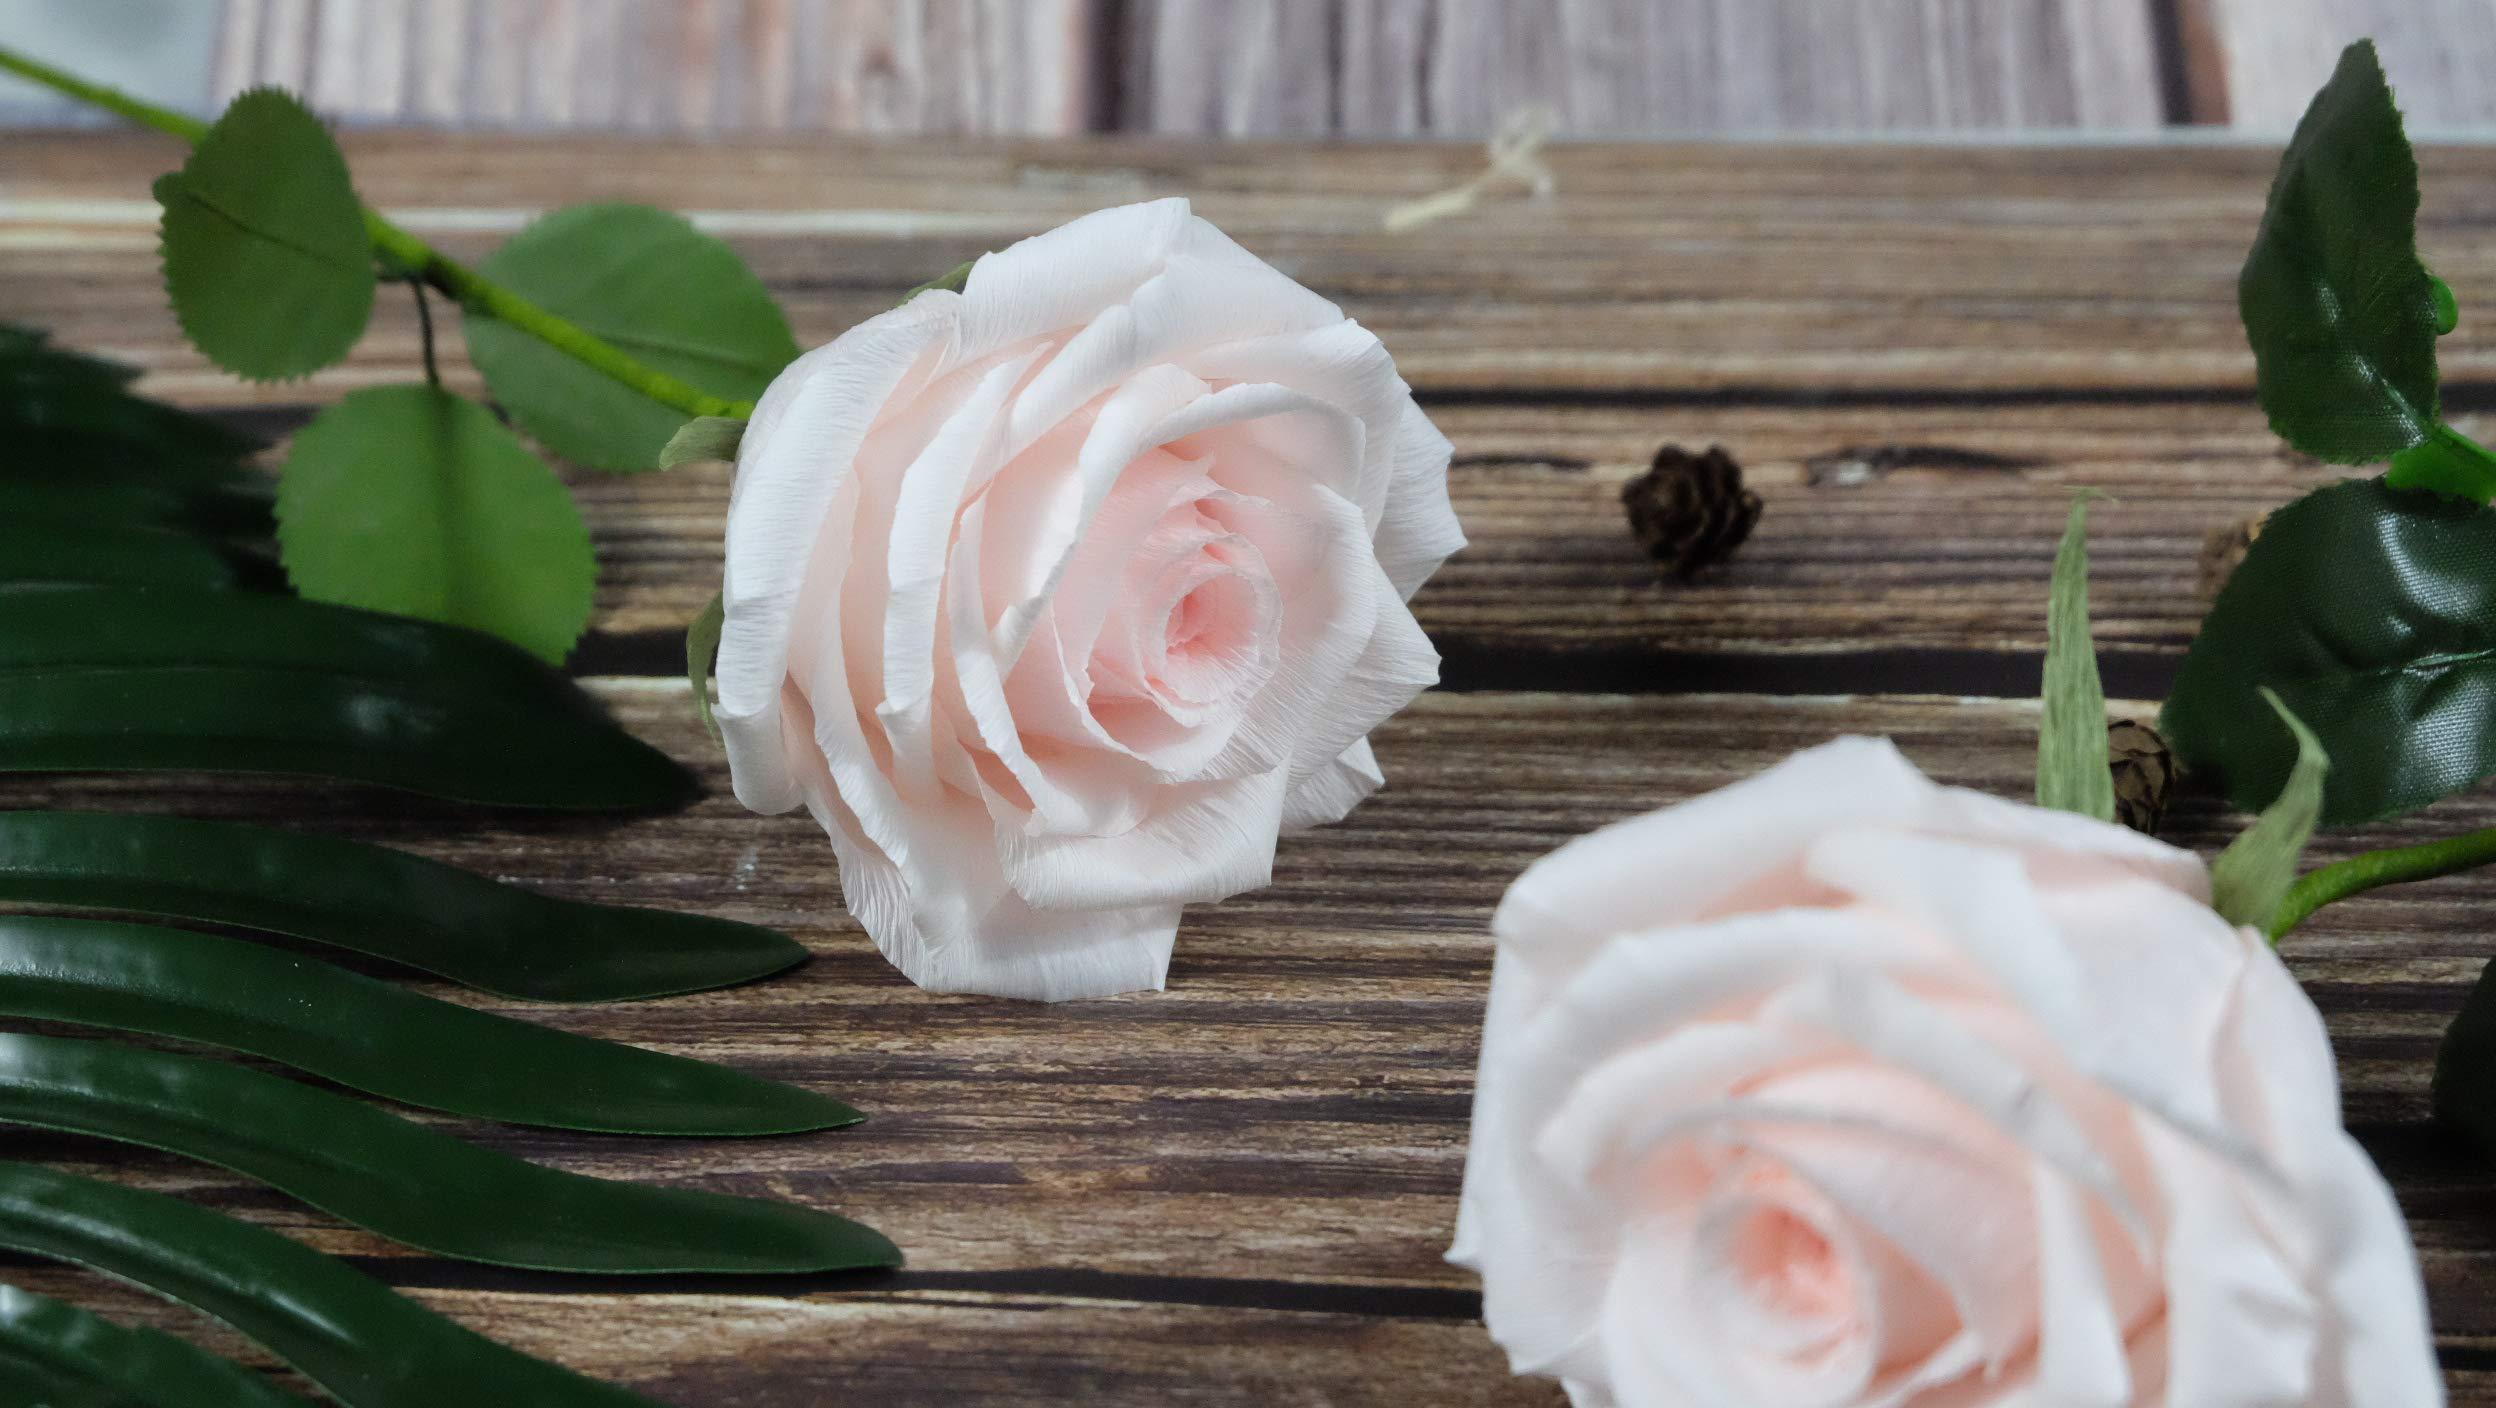 Blush-Pink-Paper-Rose-Handmade-Art-Crepe-Paper-Flowers-for-Home-decorations-Wedding-bridesmaids-bouquets-Single-Long-Stem